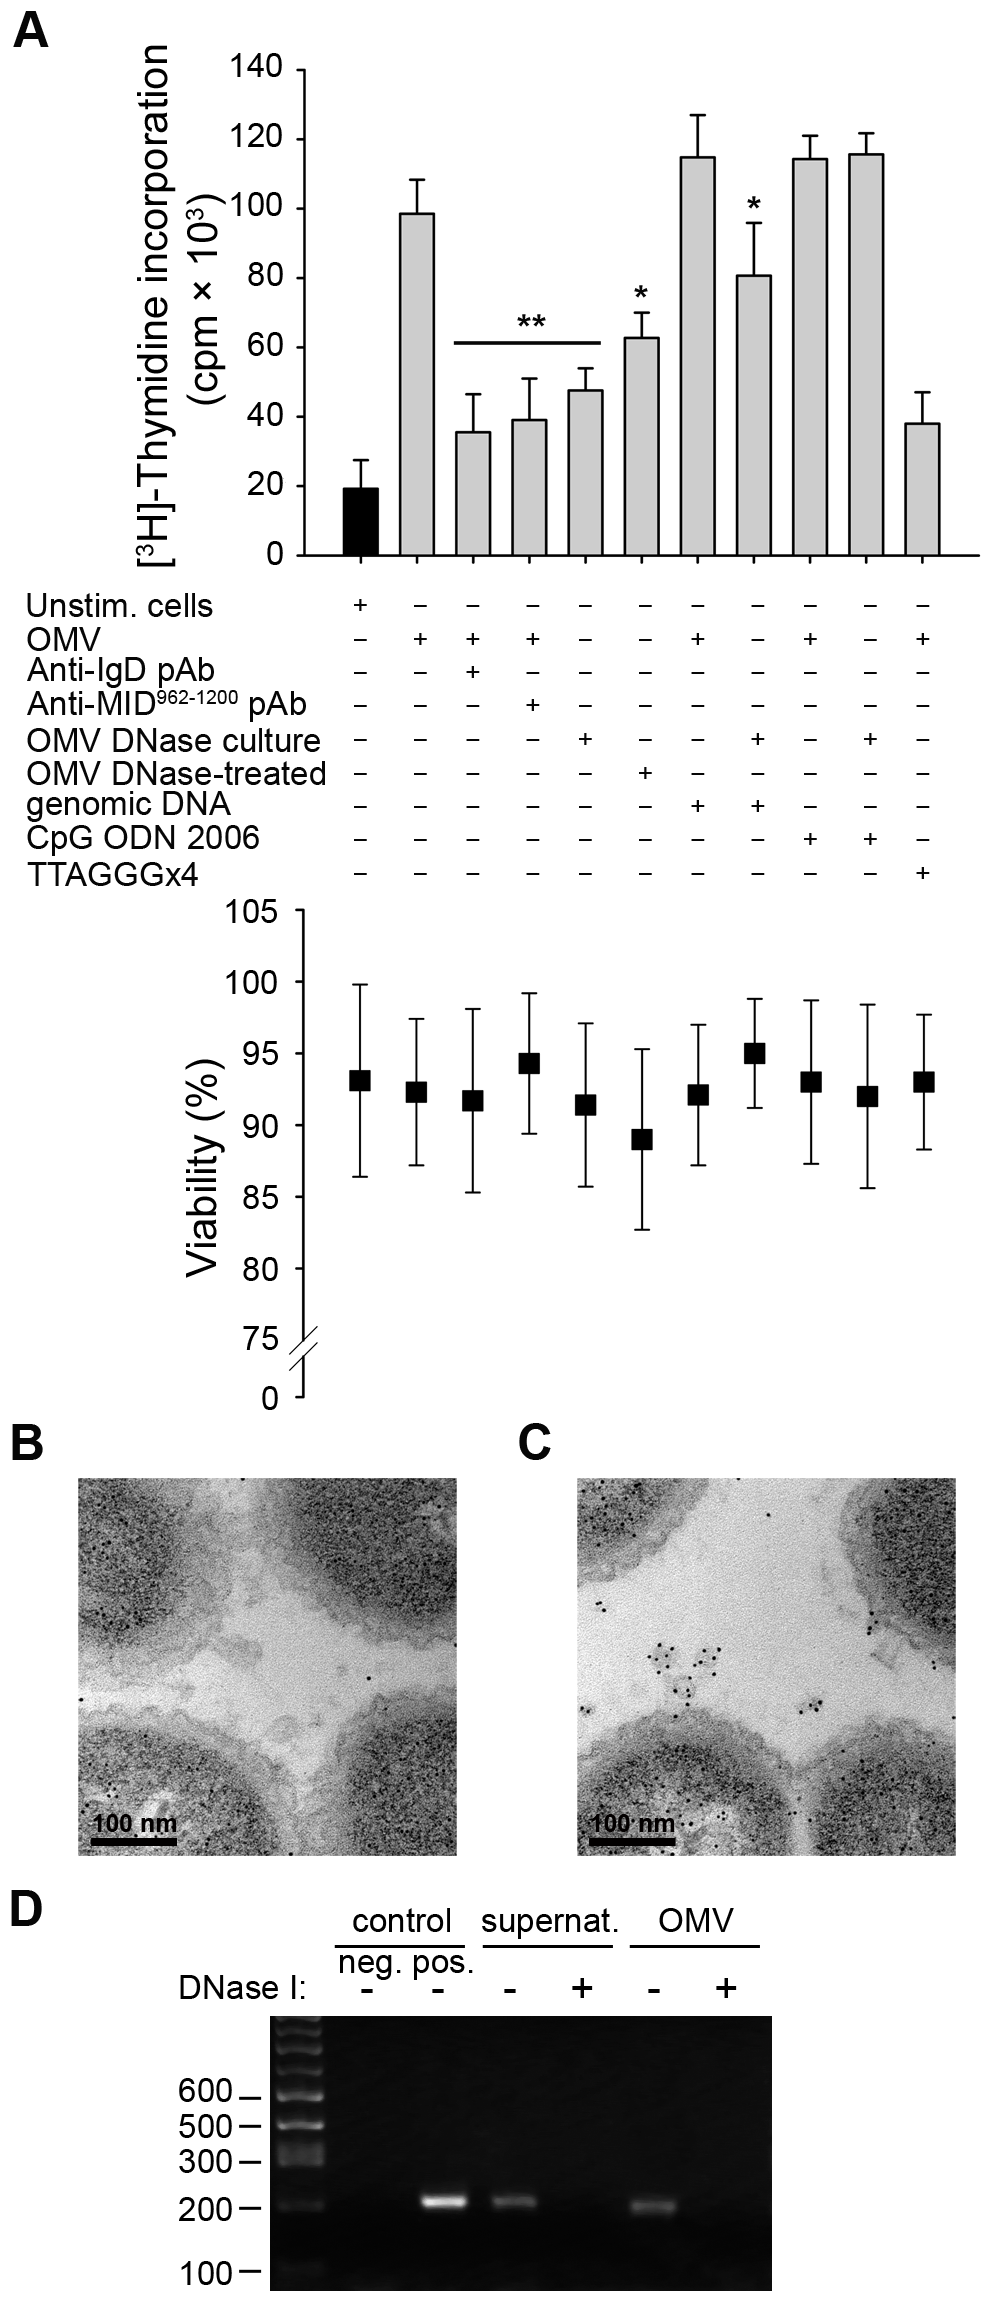 TLR9 participates in OMV-dependent B cell activation.